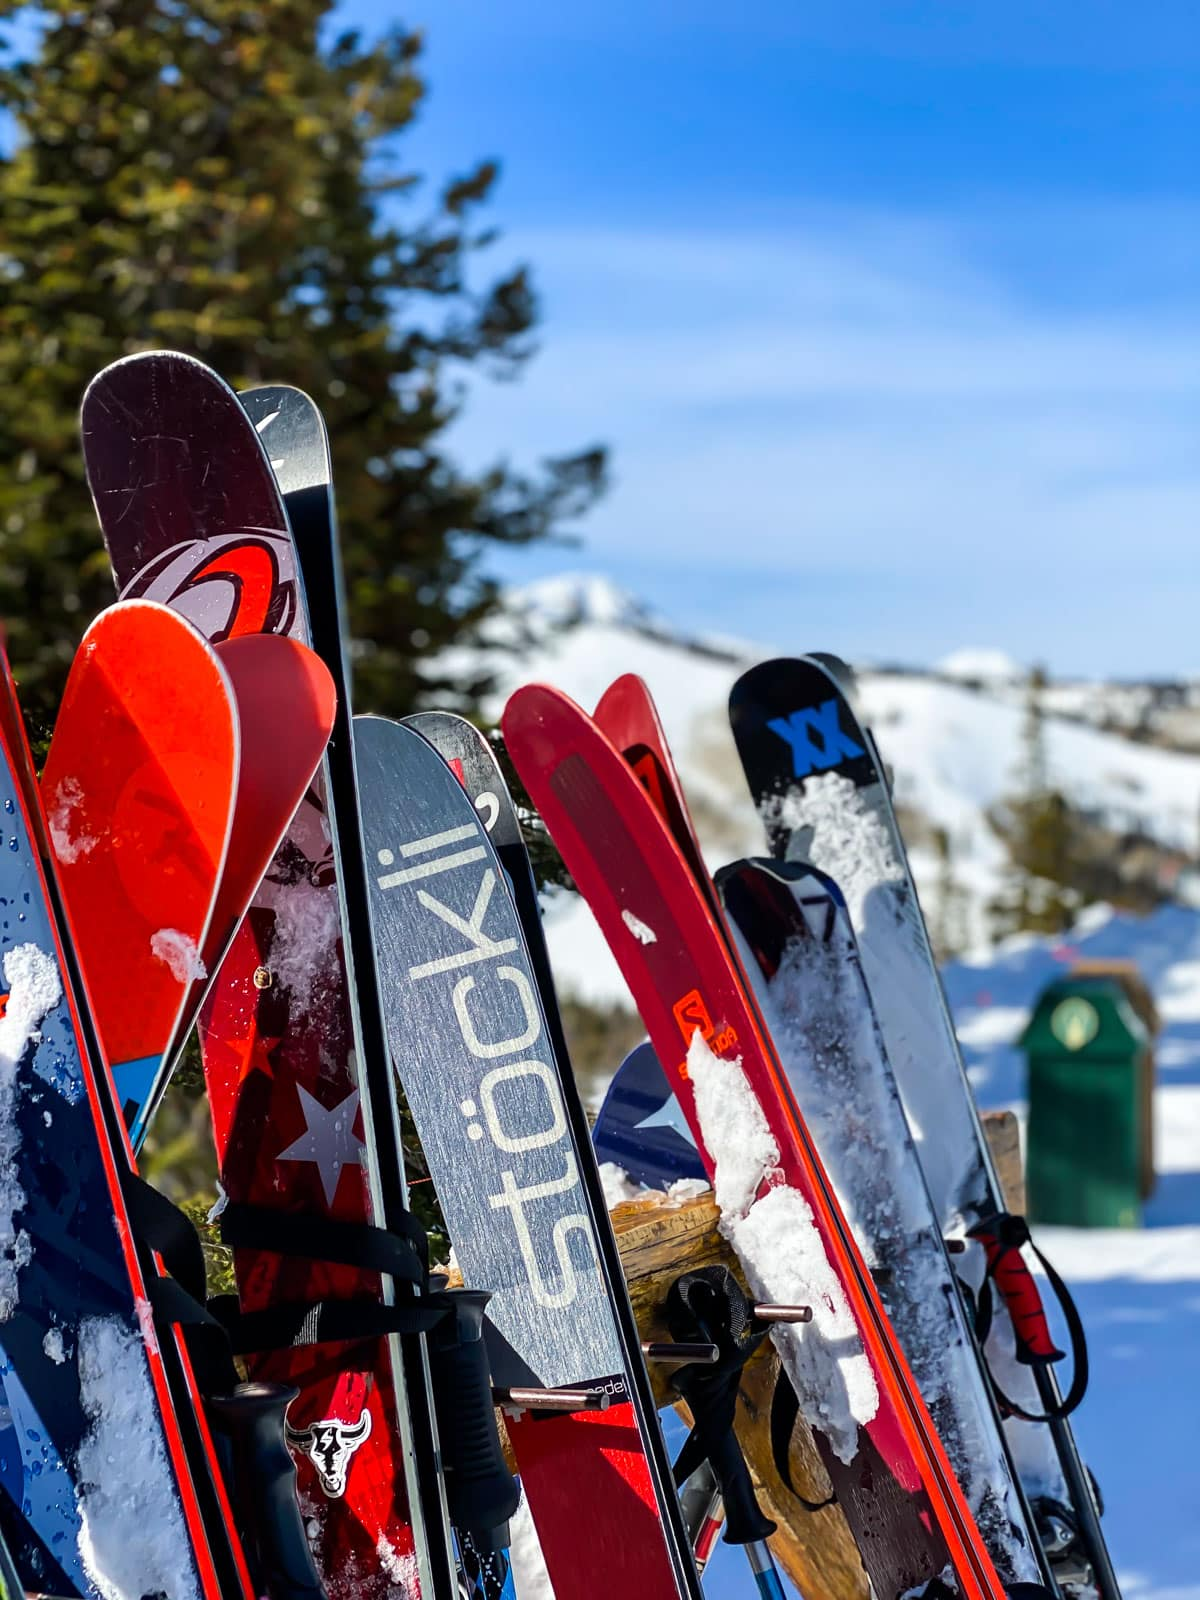 An array of snow skis used for skiing at Deer Valley Resort